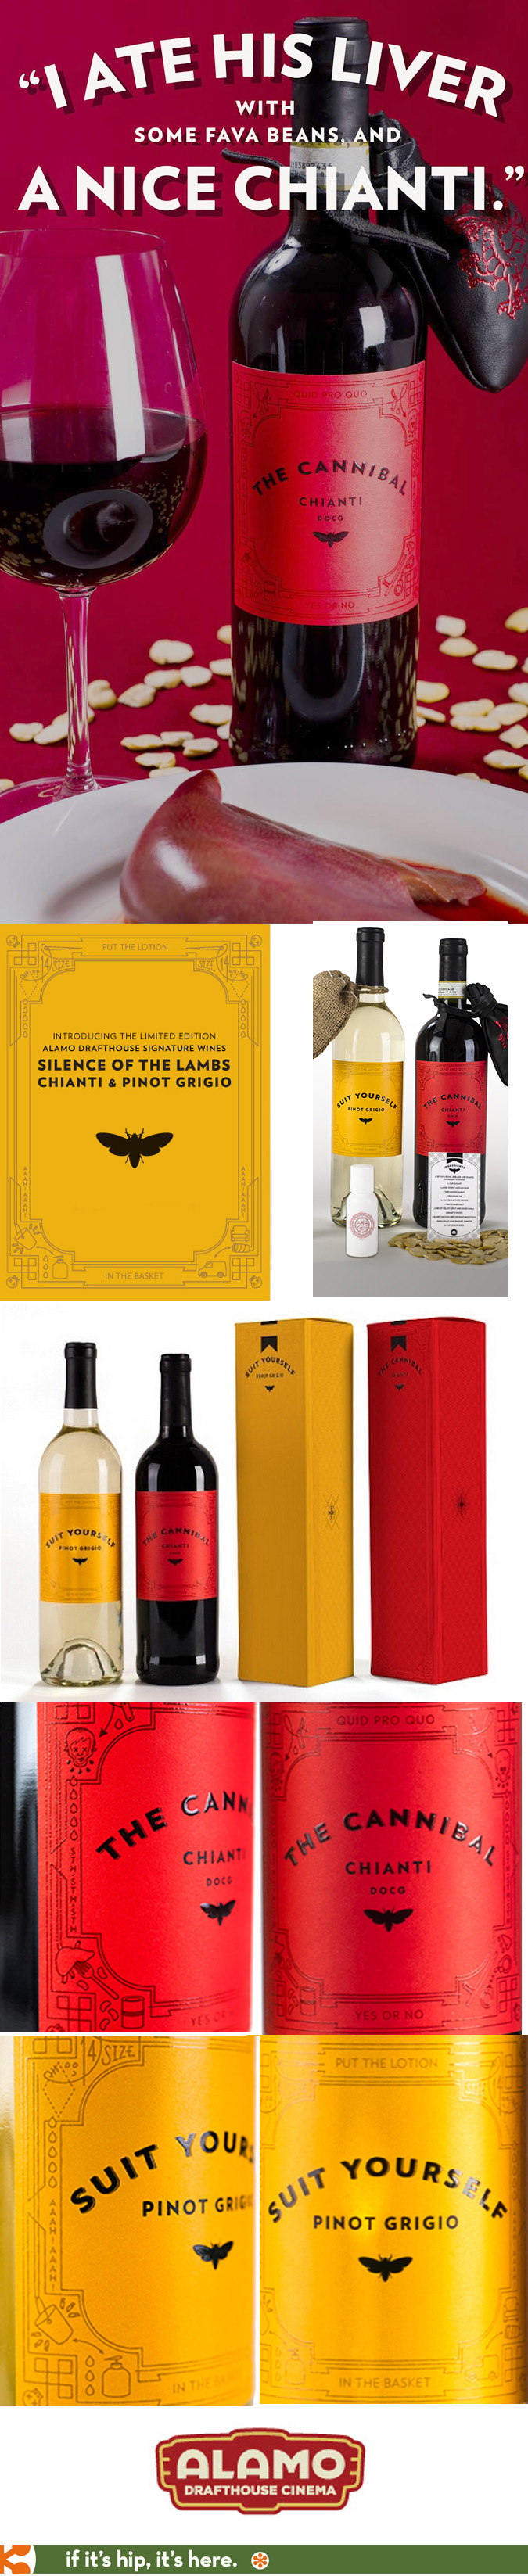 Silence Of The Lambs Wines The Cannibal Chianti And Suit Yourself Pinot Grigio For The Alamo Drafthouse D Clever Wine Labels Wine Drinks Wine And Spirits